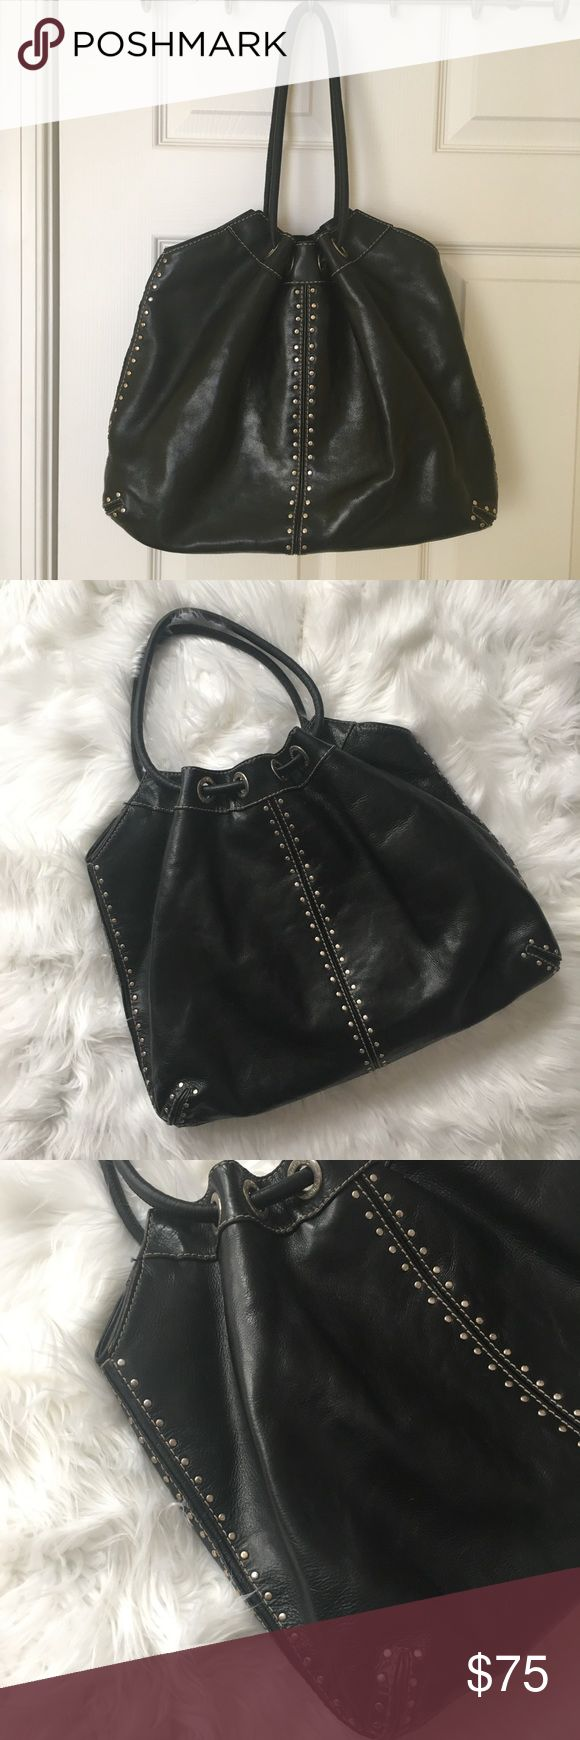 Michael Kors Black Leather Studded Astor Ring Tote Authentic Michael Kors Astor Hobo Bag. Bag has a variety of zip & slip pockets.  Handles: 7.5 in drop Closure: top magnetic snap closure interior  Pockets: one zip pocket, three patch pockets & one accessory pocket  Inside a little dirty from make-up spill. Michael Kors Bags Totes